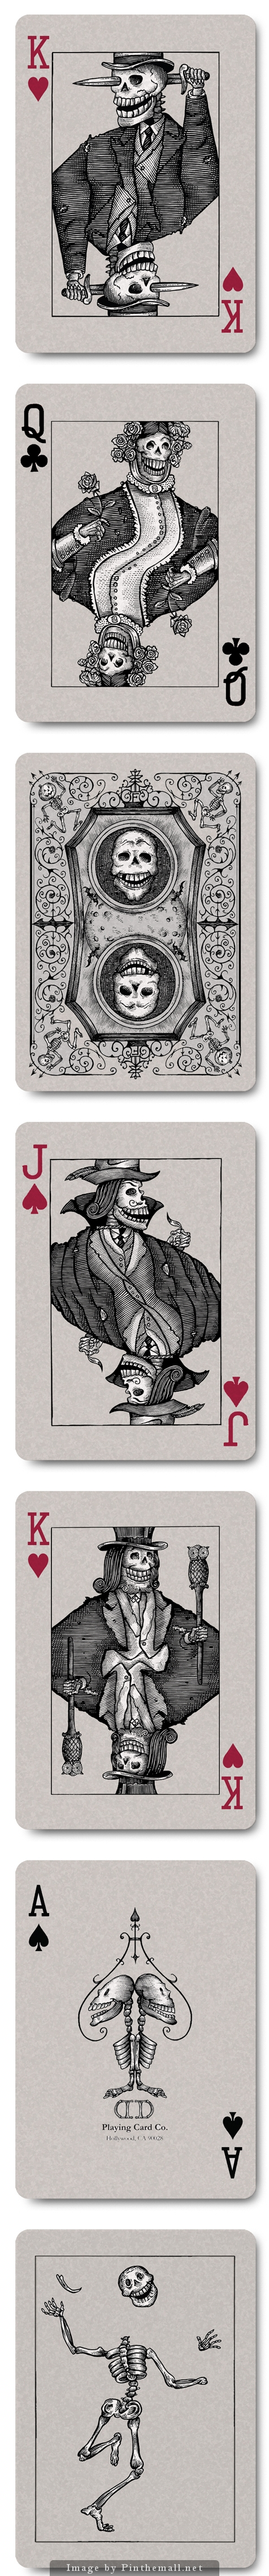 October Playing Card Characters created by Steven Noble Cartooning, Character Design, Illustration